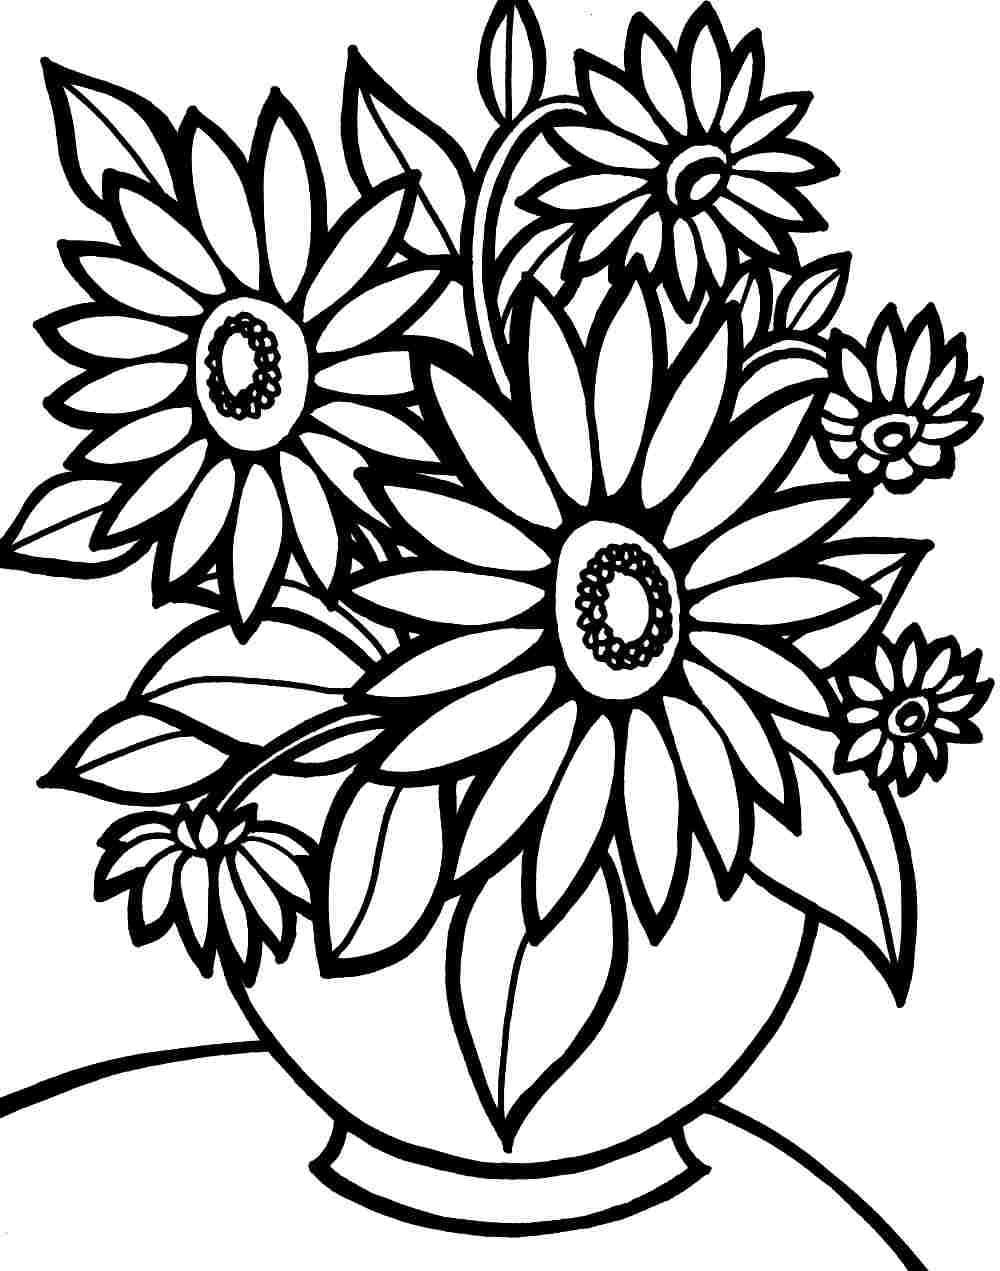 Flower Coloring Pages To Print Printable Flower Coloring Pages Easy Coloring Pages Flower Coloring Sheets